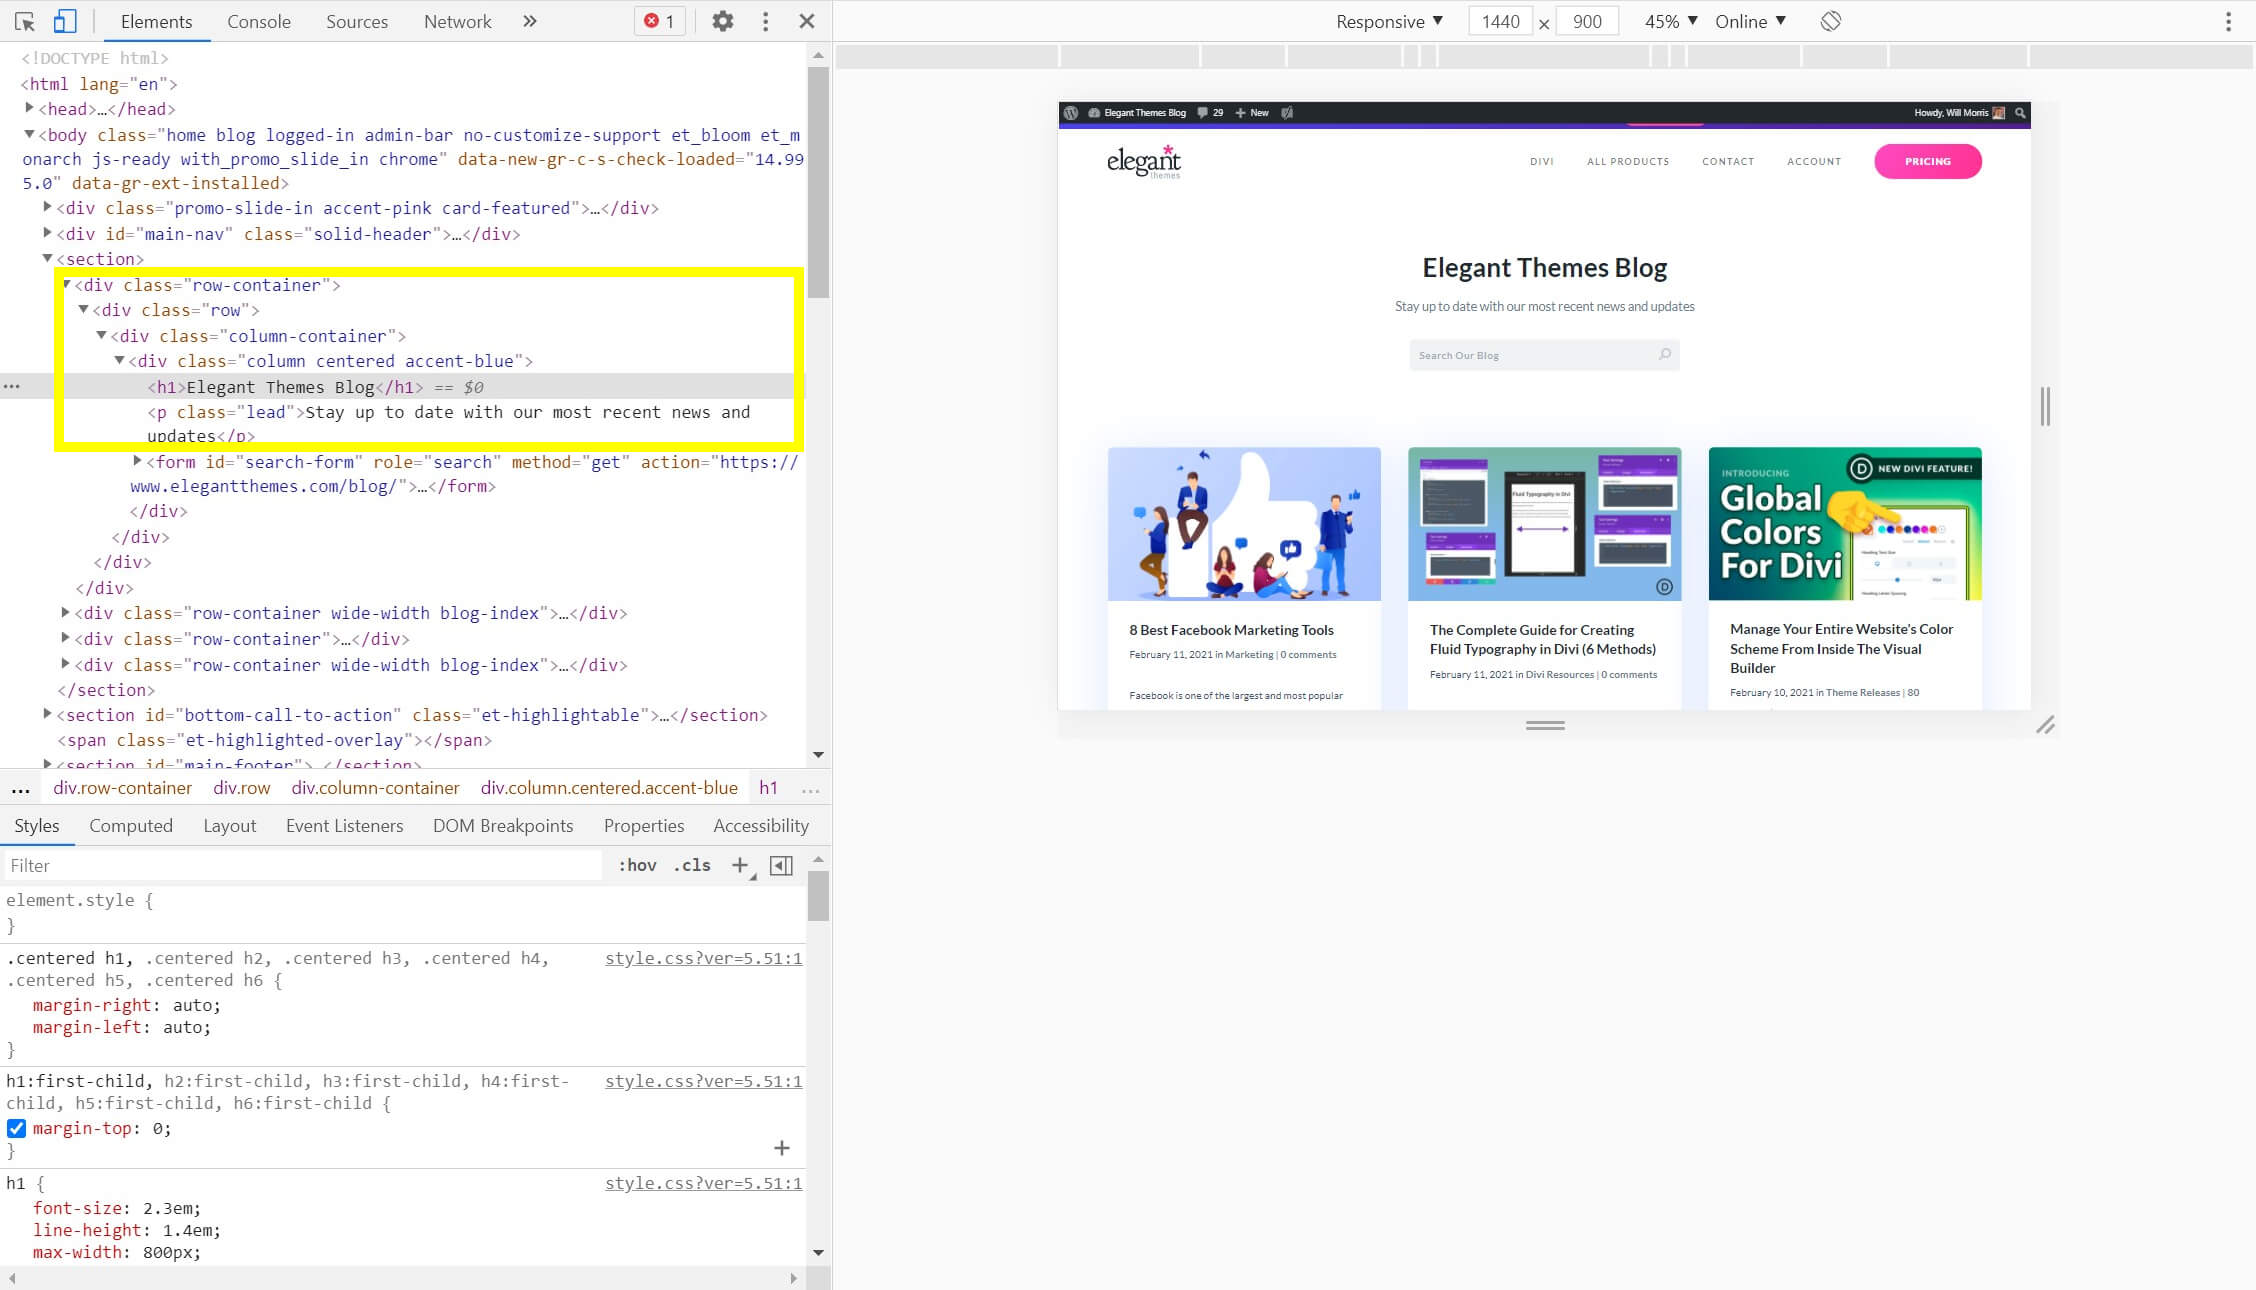 CSS classes displayed in the Inspect Element window.